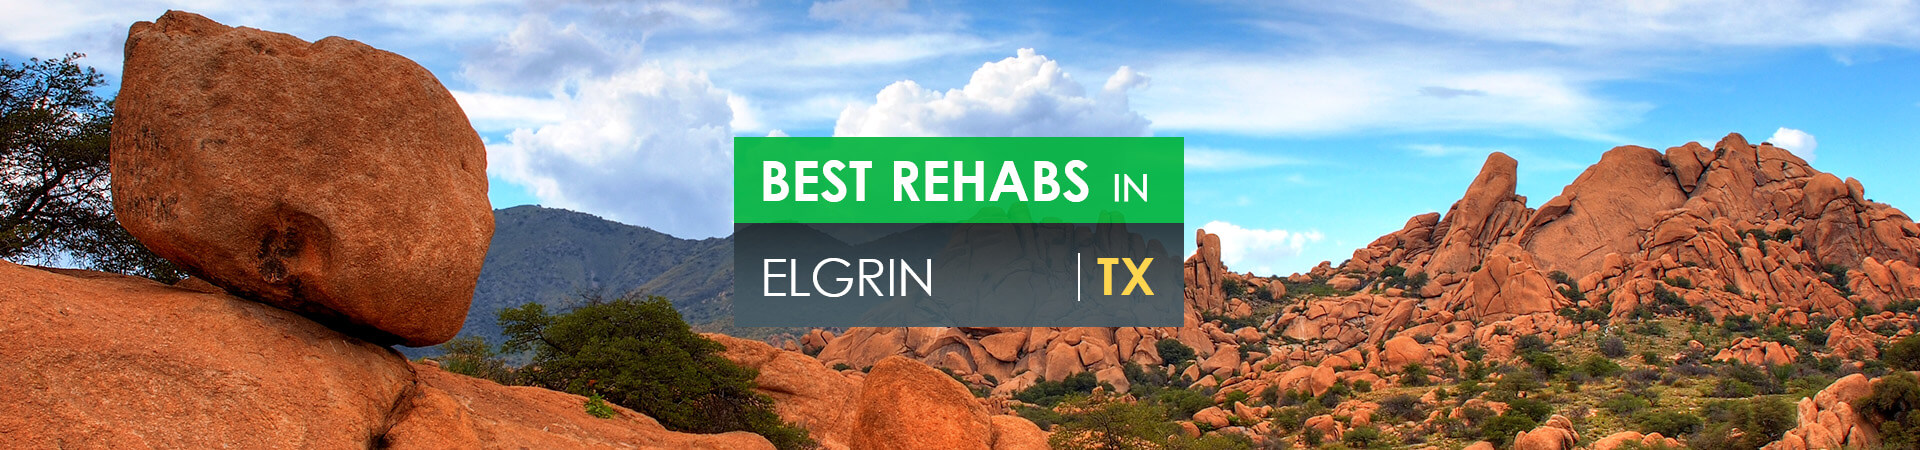 Best rehabs in Elgrin, TX